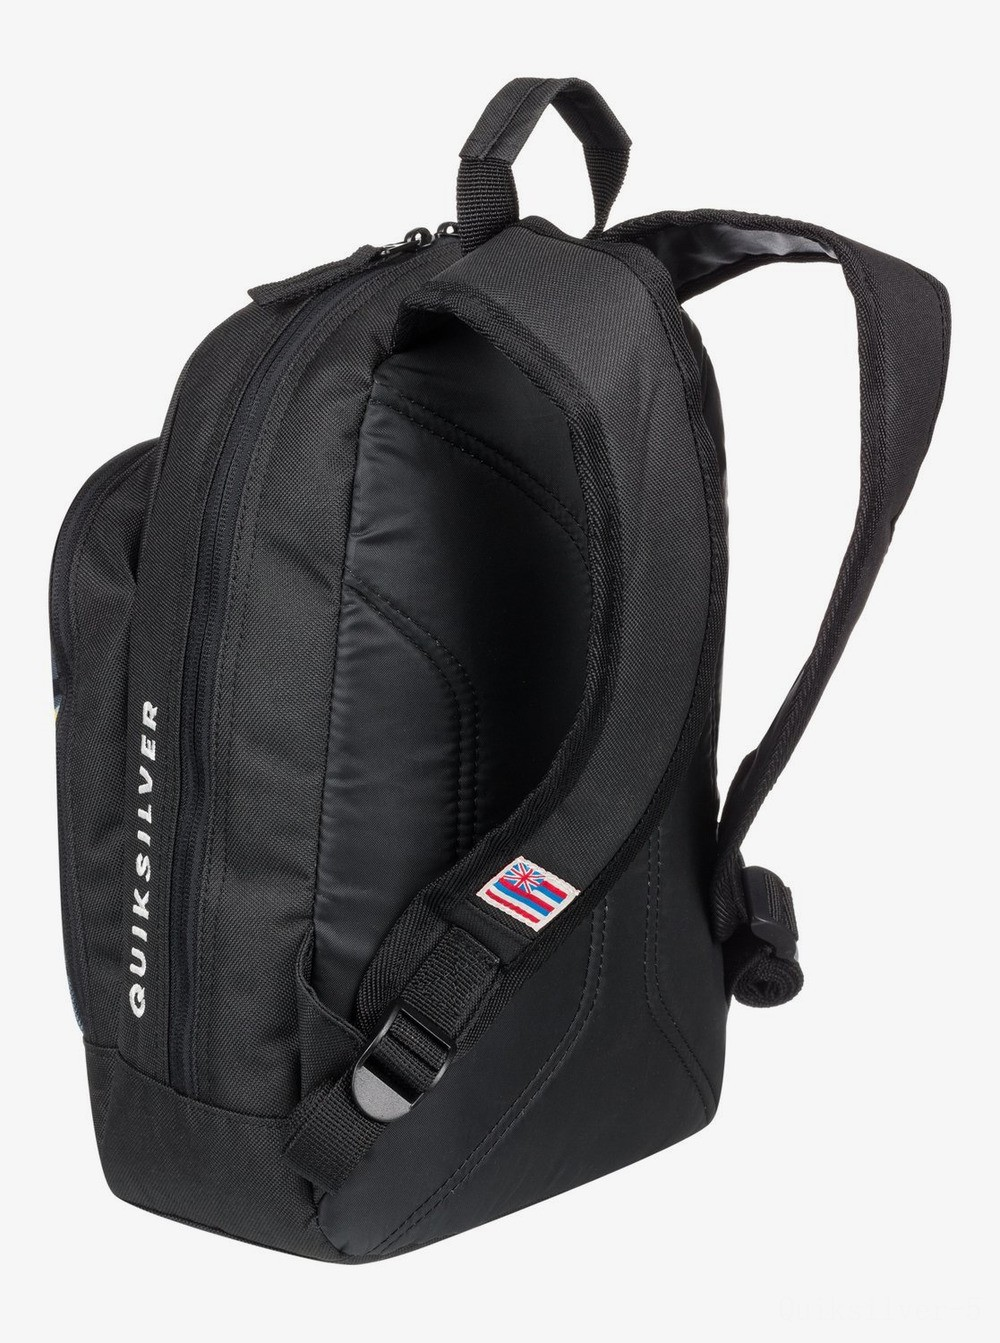 limited sale boy's 2-7 chompine 12l small backpack - black last chance best price